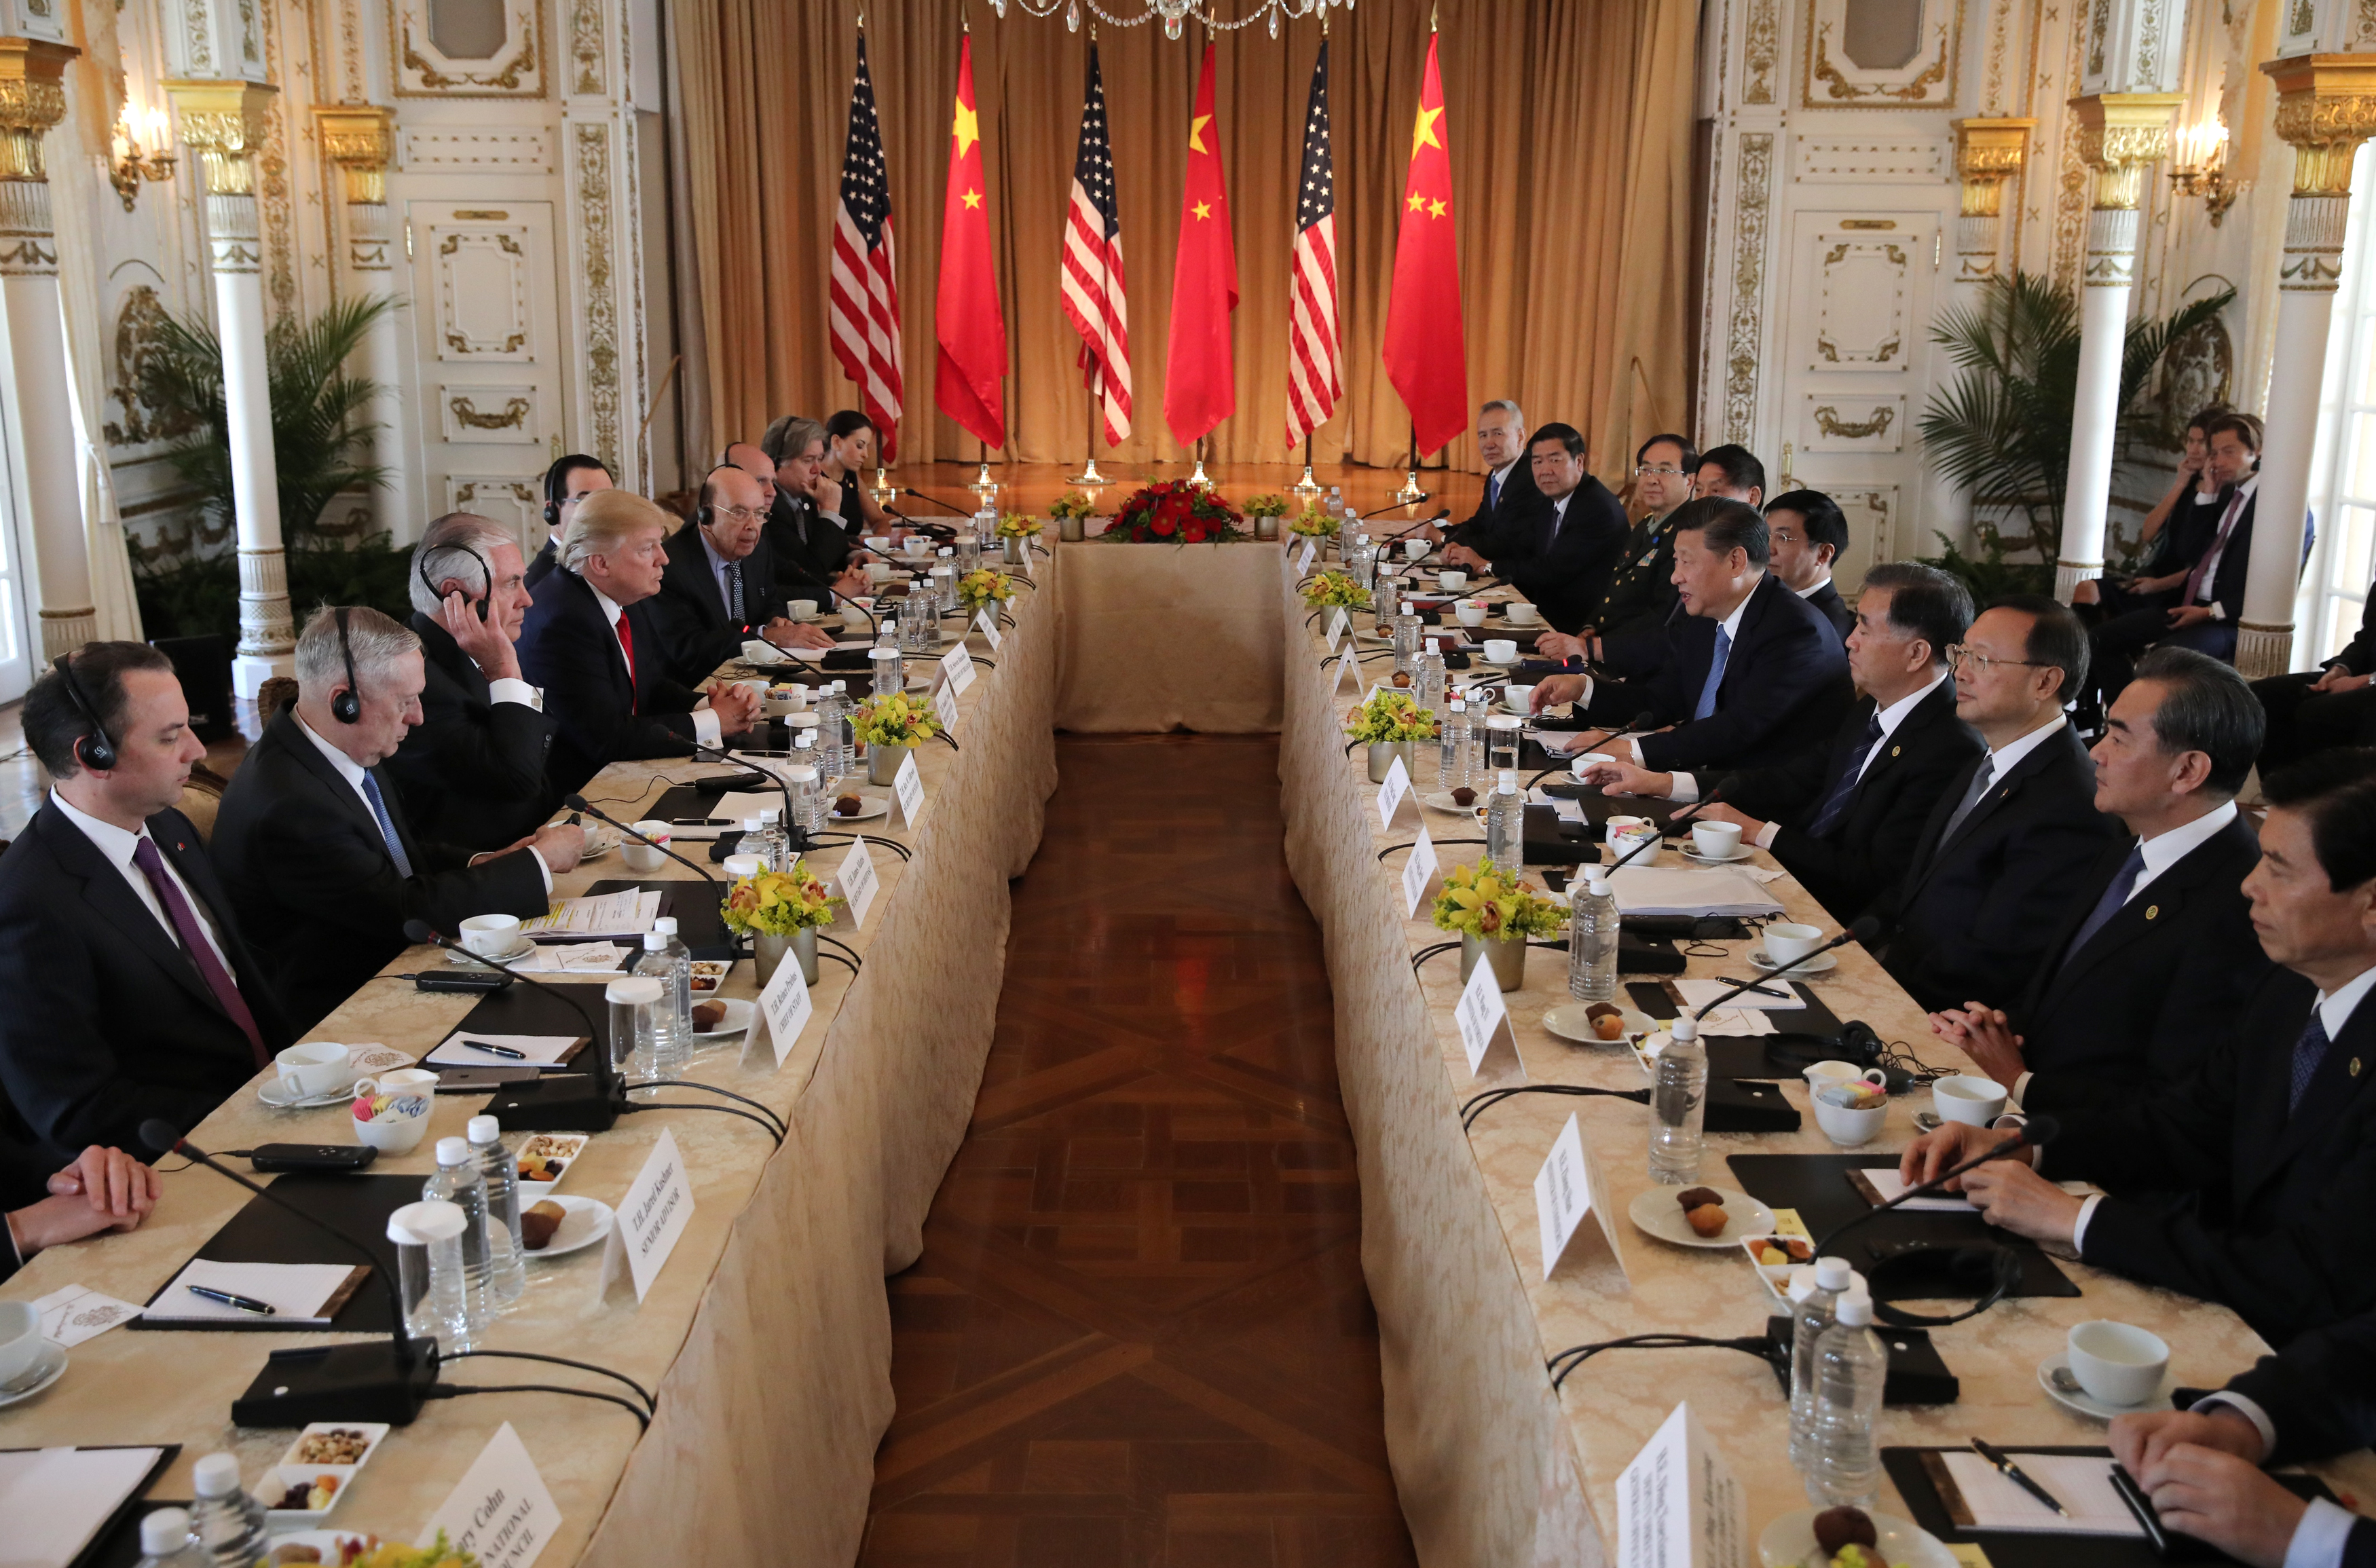 U.S. President Donald Trump (4thL) holds a bilateral meeting with China's President Xi Jinping (5thR) at Trump's Mar-a-Lago estate in Palm Beach, Florida, U.S., April 7, 2017. REUTERS/Carlos Barria